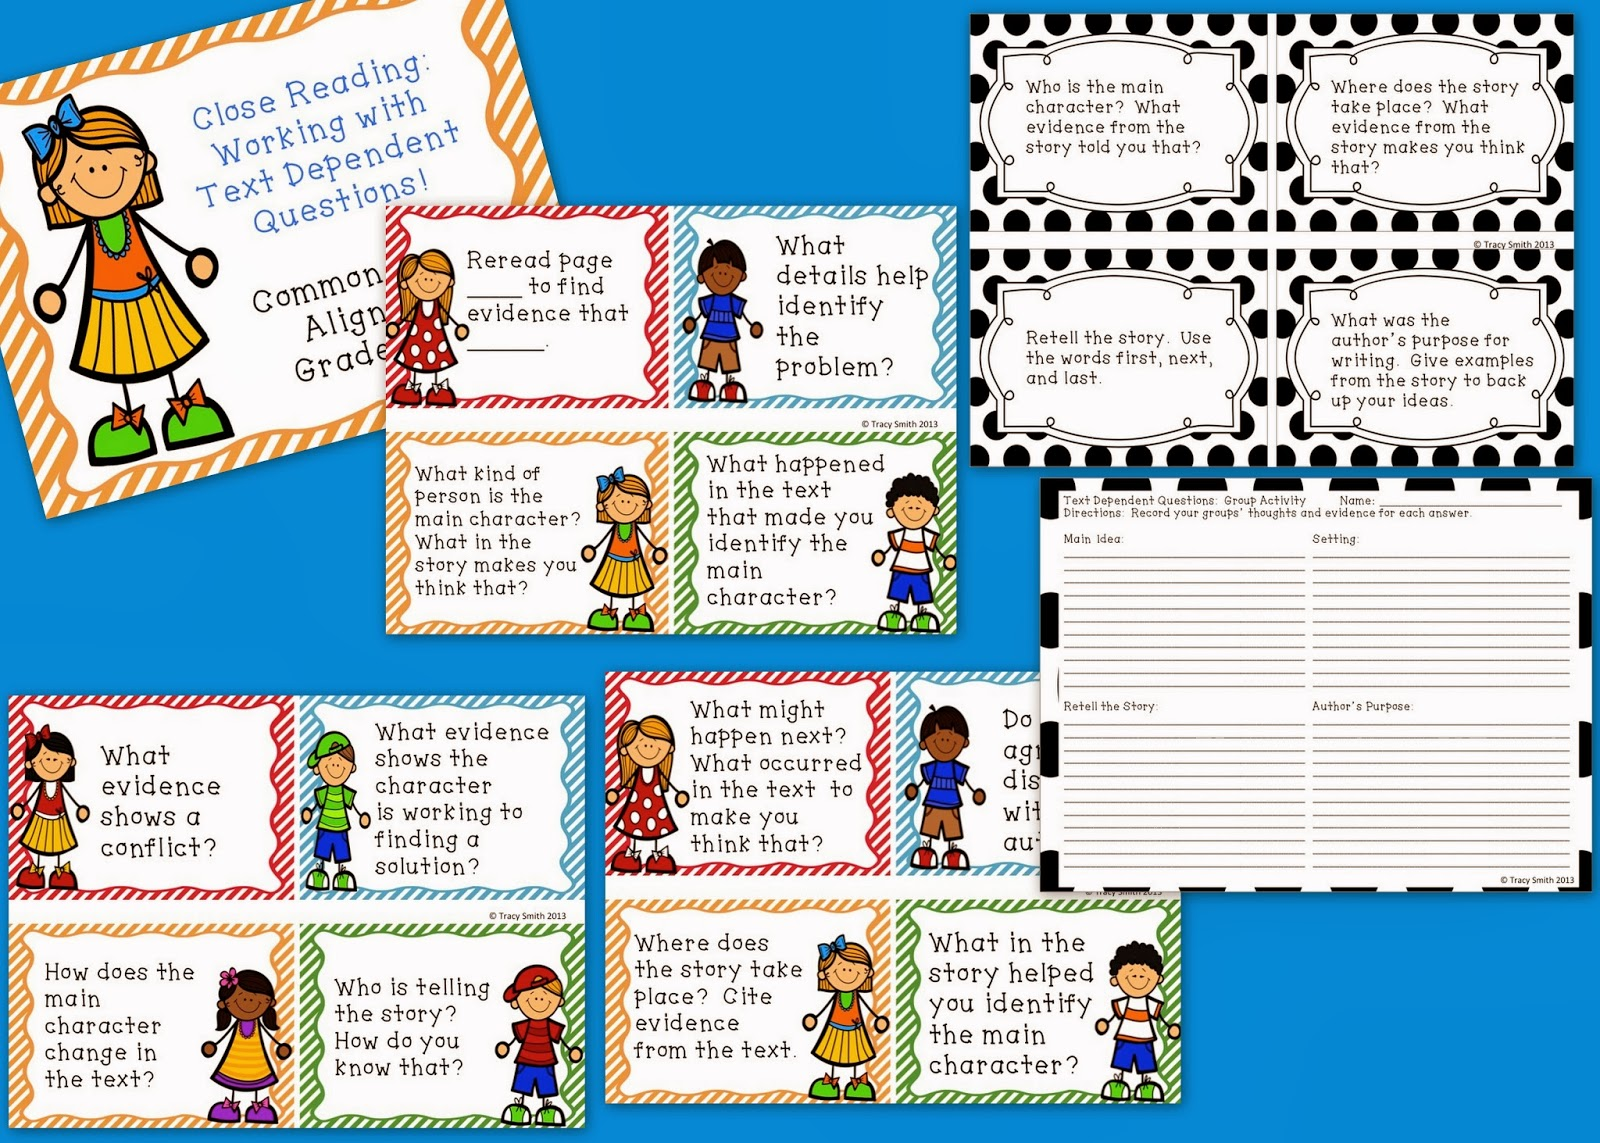 http://www.teacherspayteachers.com/Product/Close-Reading-Working-with-Text-Dependent-Questions-1030278